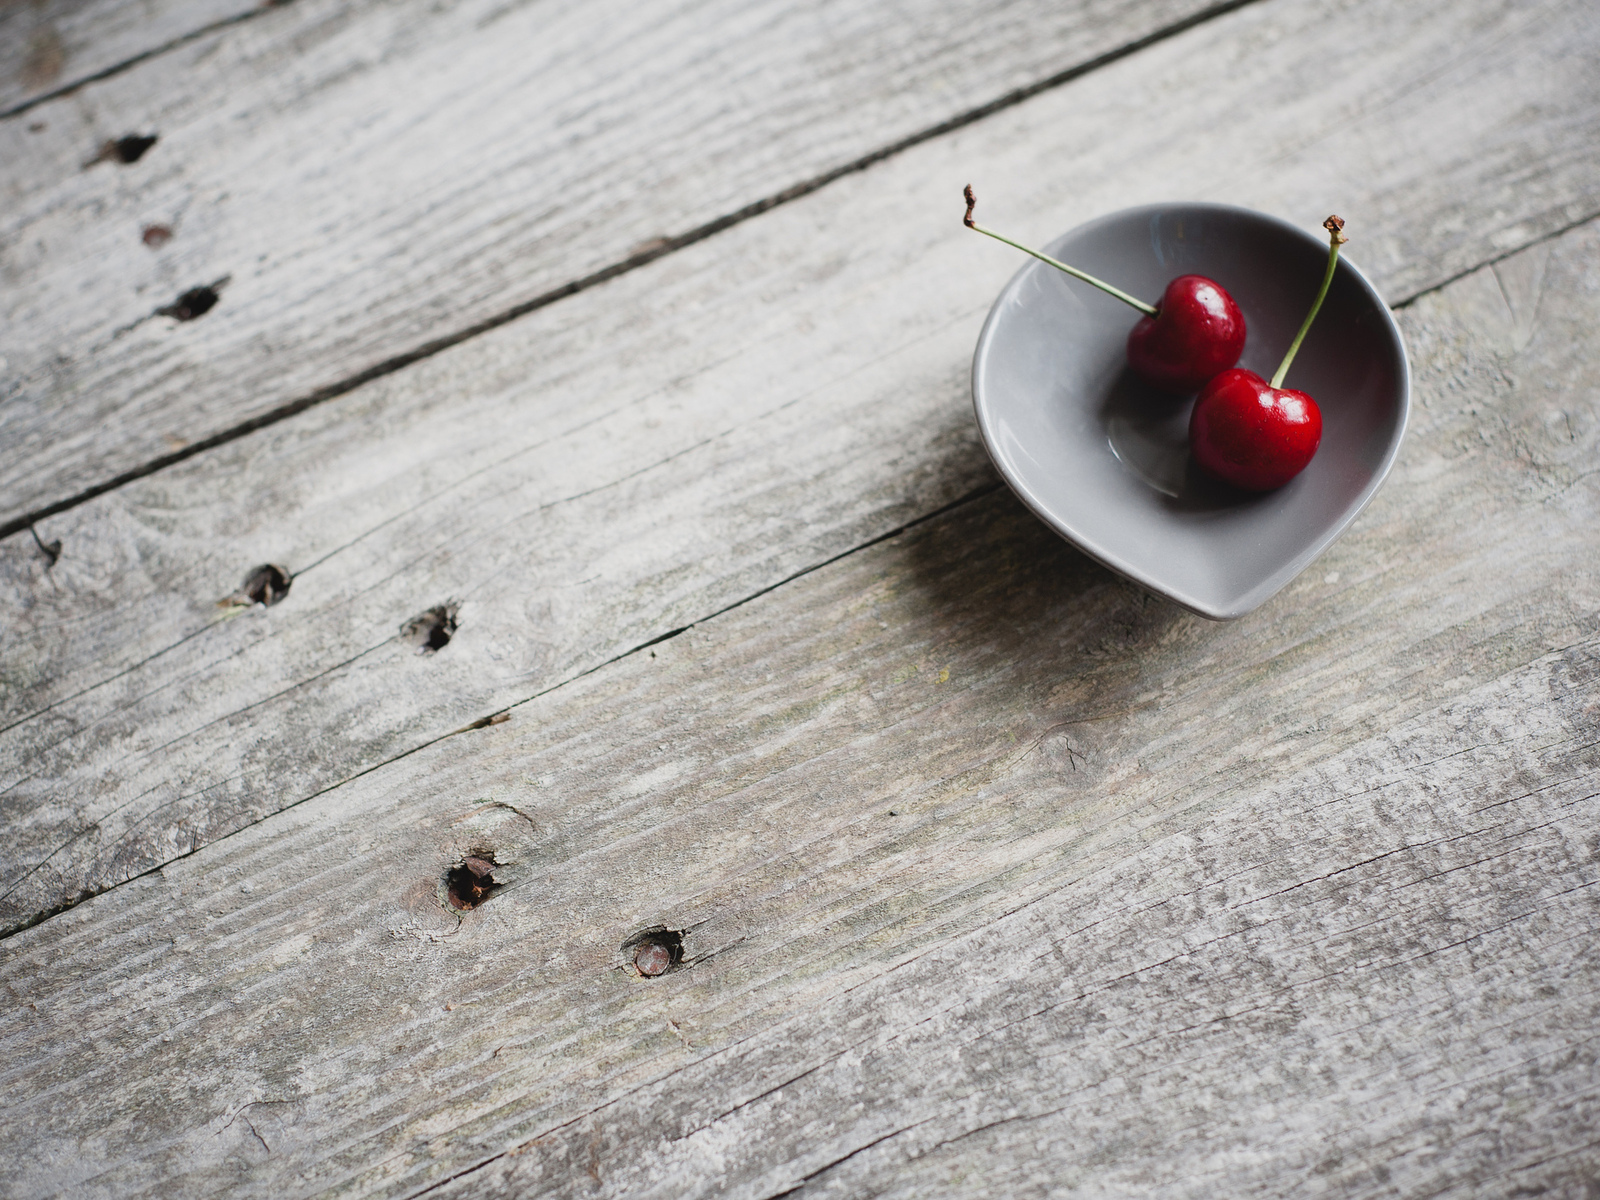 http://1.bp.blogspot.com/-HiZ3c8mCvsE/UF83ETIZ1PI/AAAAAAAAEwE/DS582xNuXJw/s1600/Two-Cherries-in-Bowl-Selectiv-Color-Photo-HD-Wallpaper--NatureWallBase.Blogspot.Com.jpg